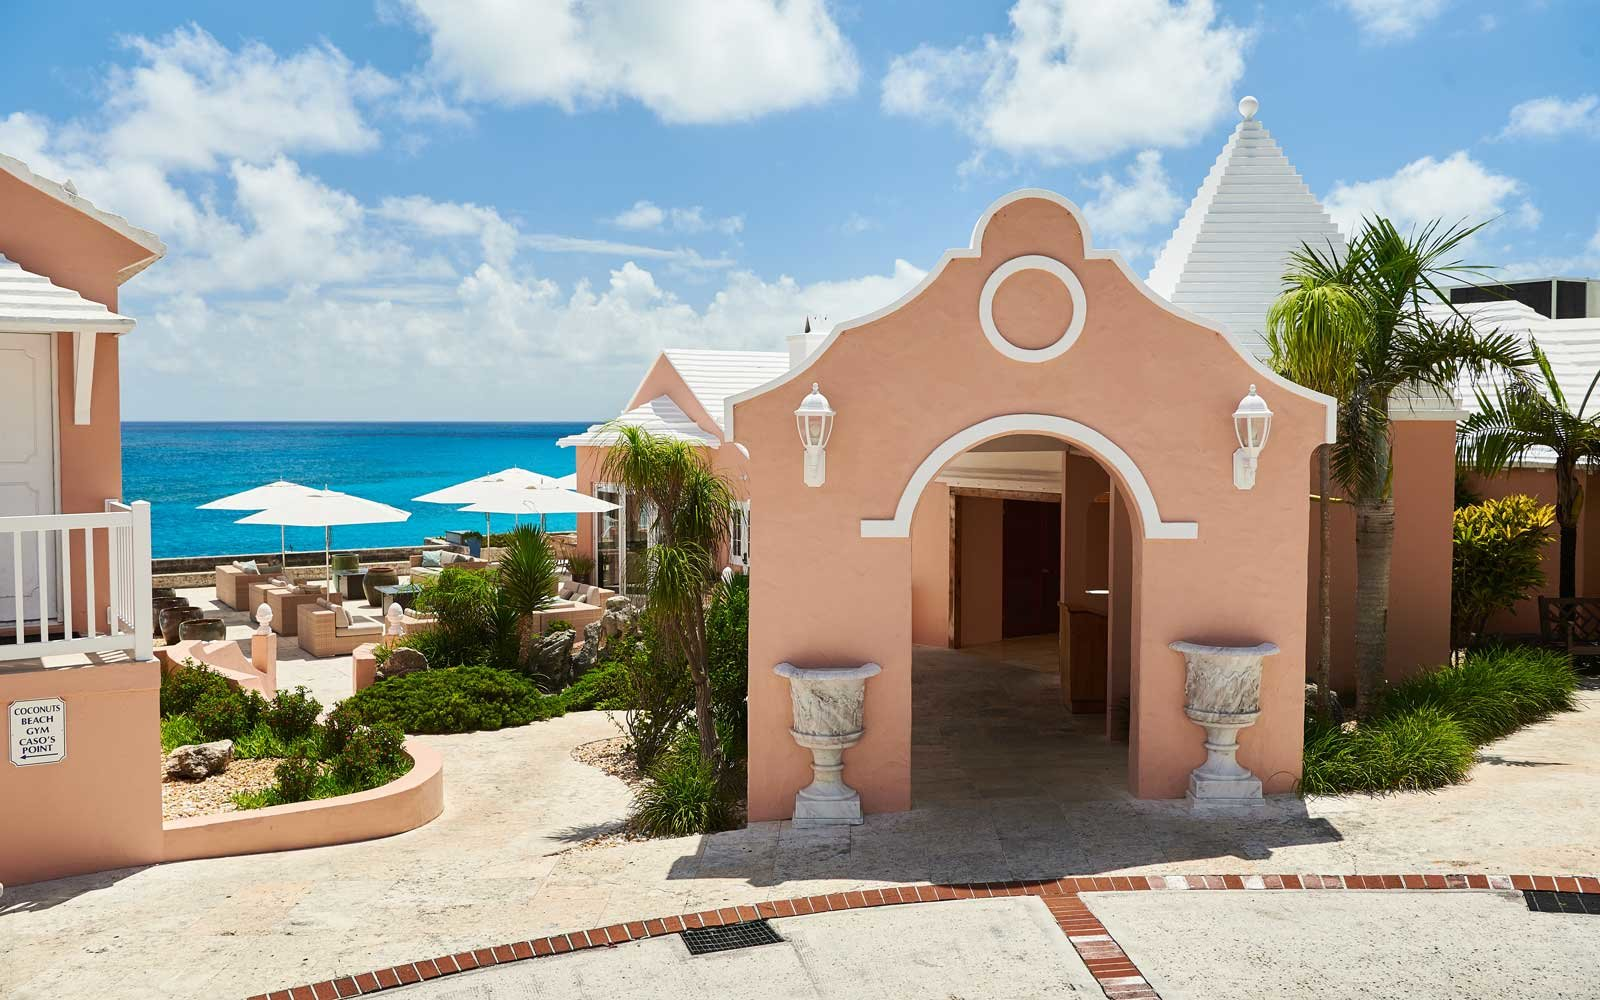 A building at The Reefs resort, in Bermuda